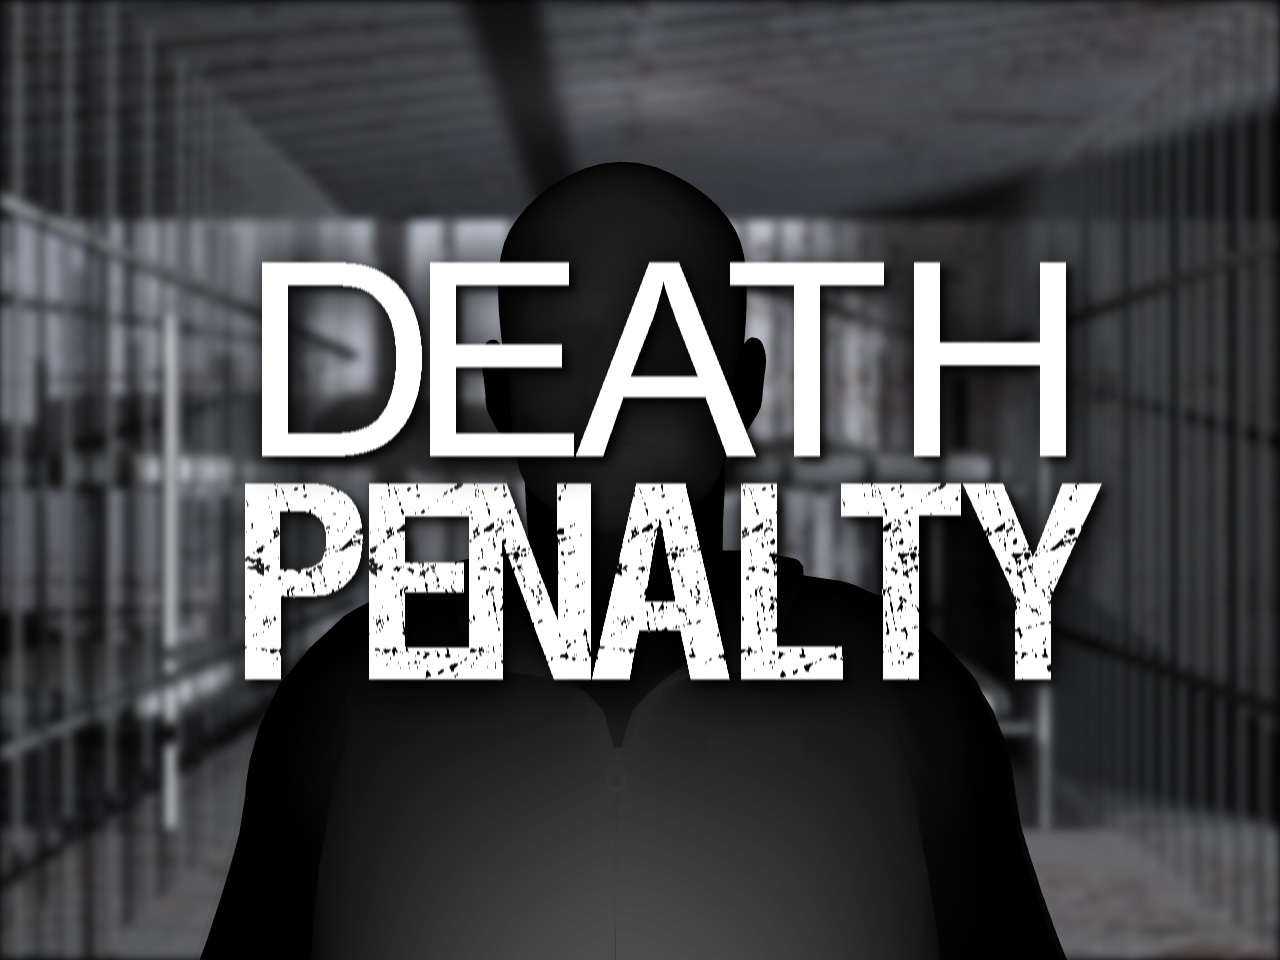 the arbitrary nature of capital punishment